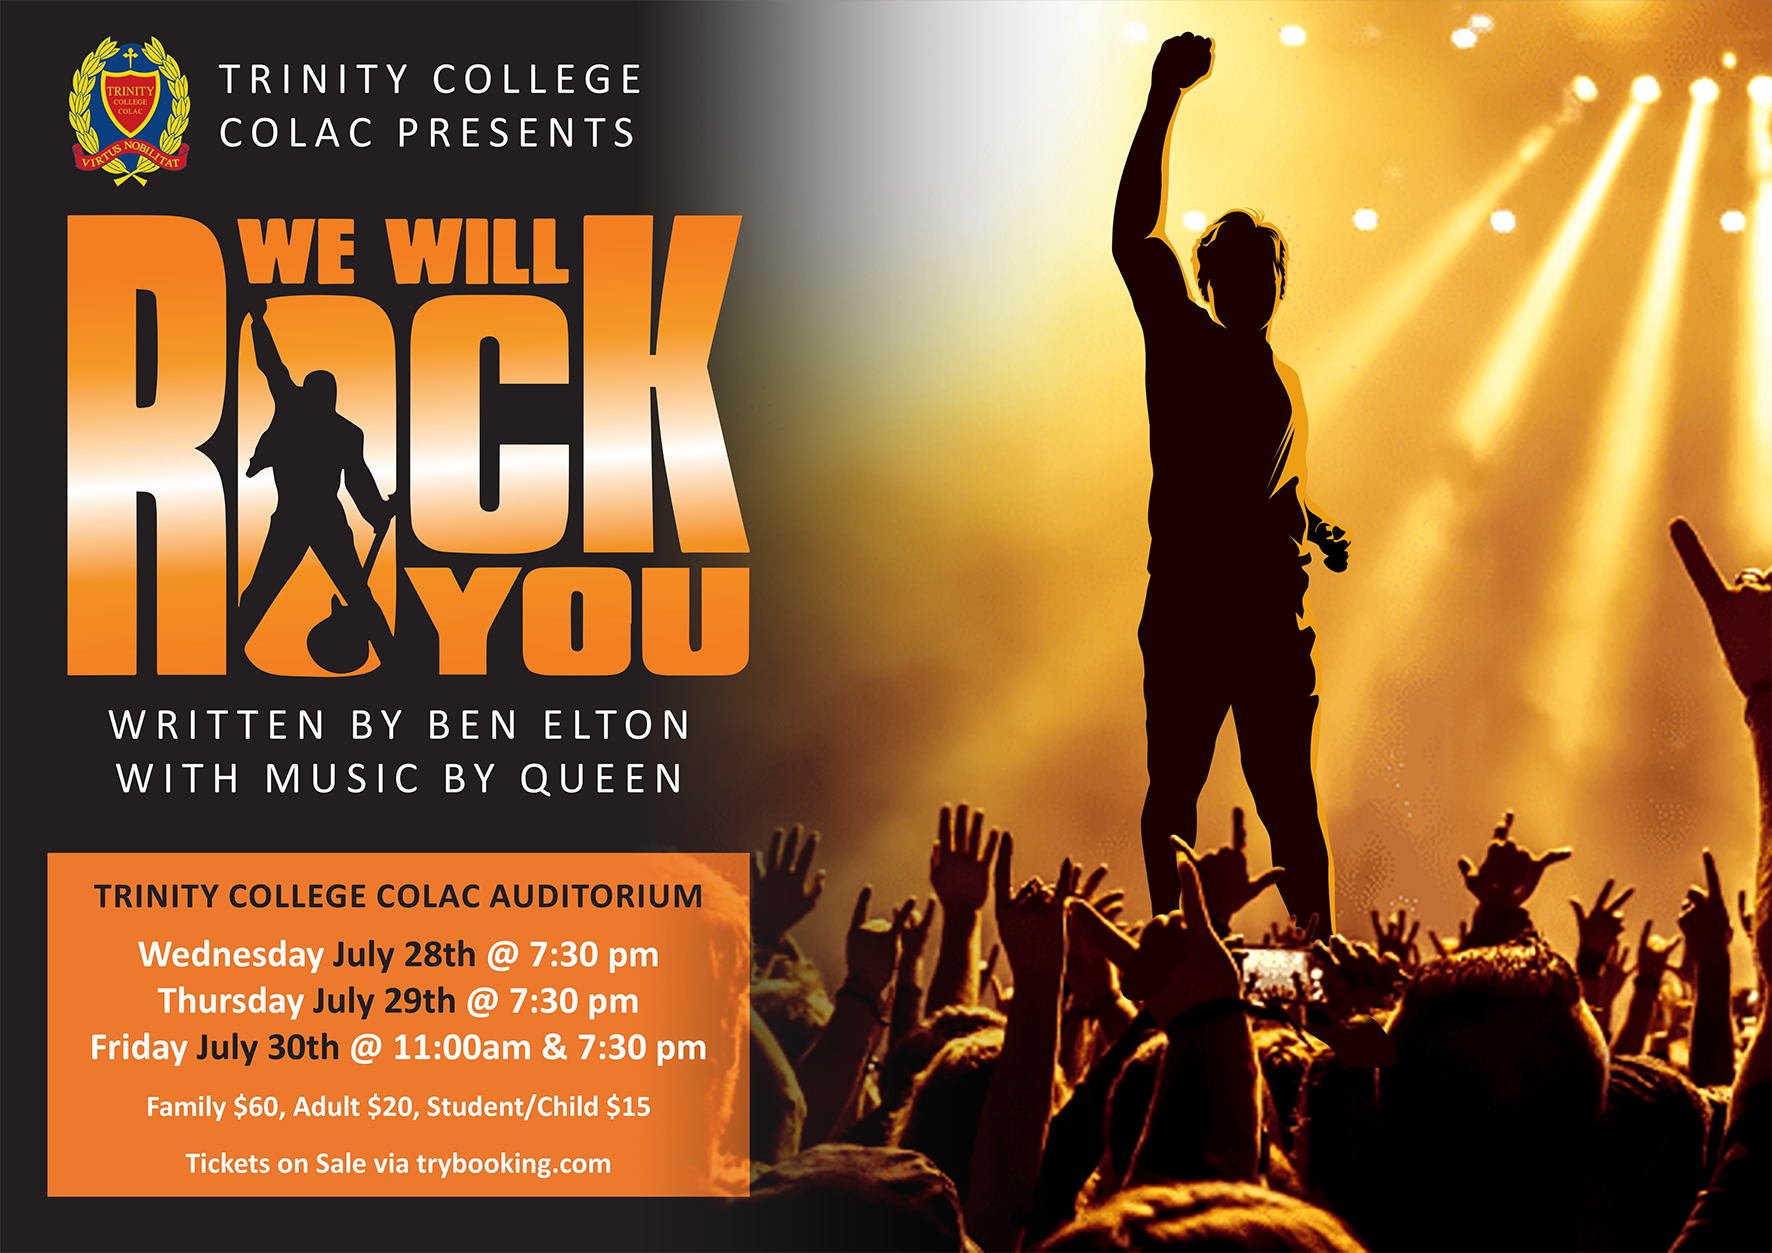 We Will Rock You Poster Small;